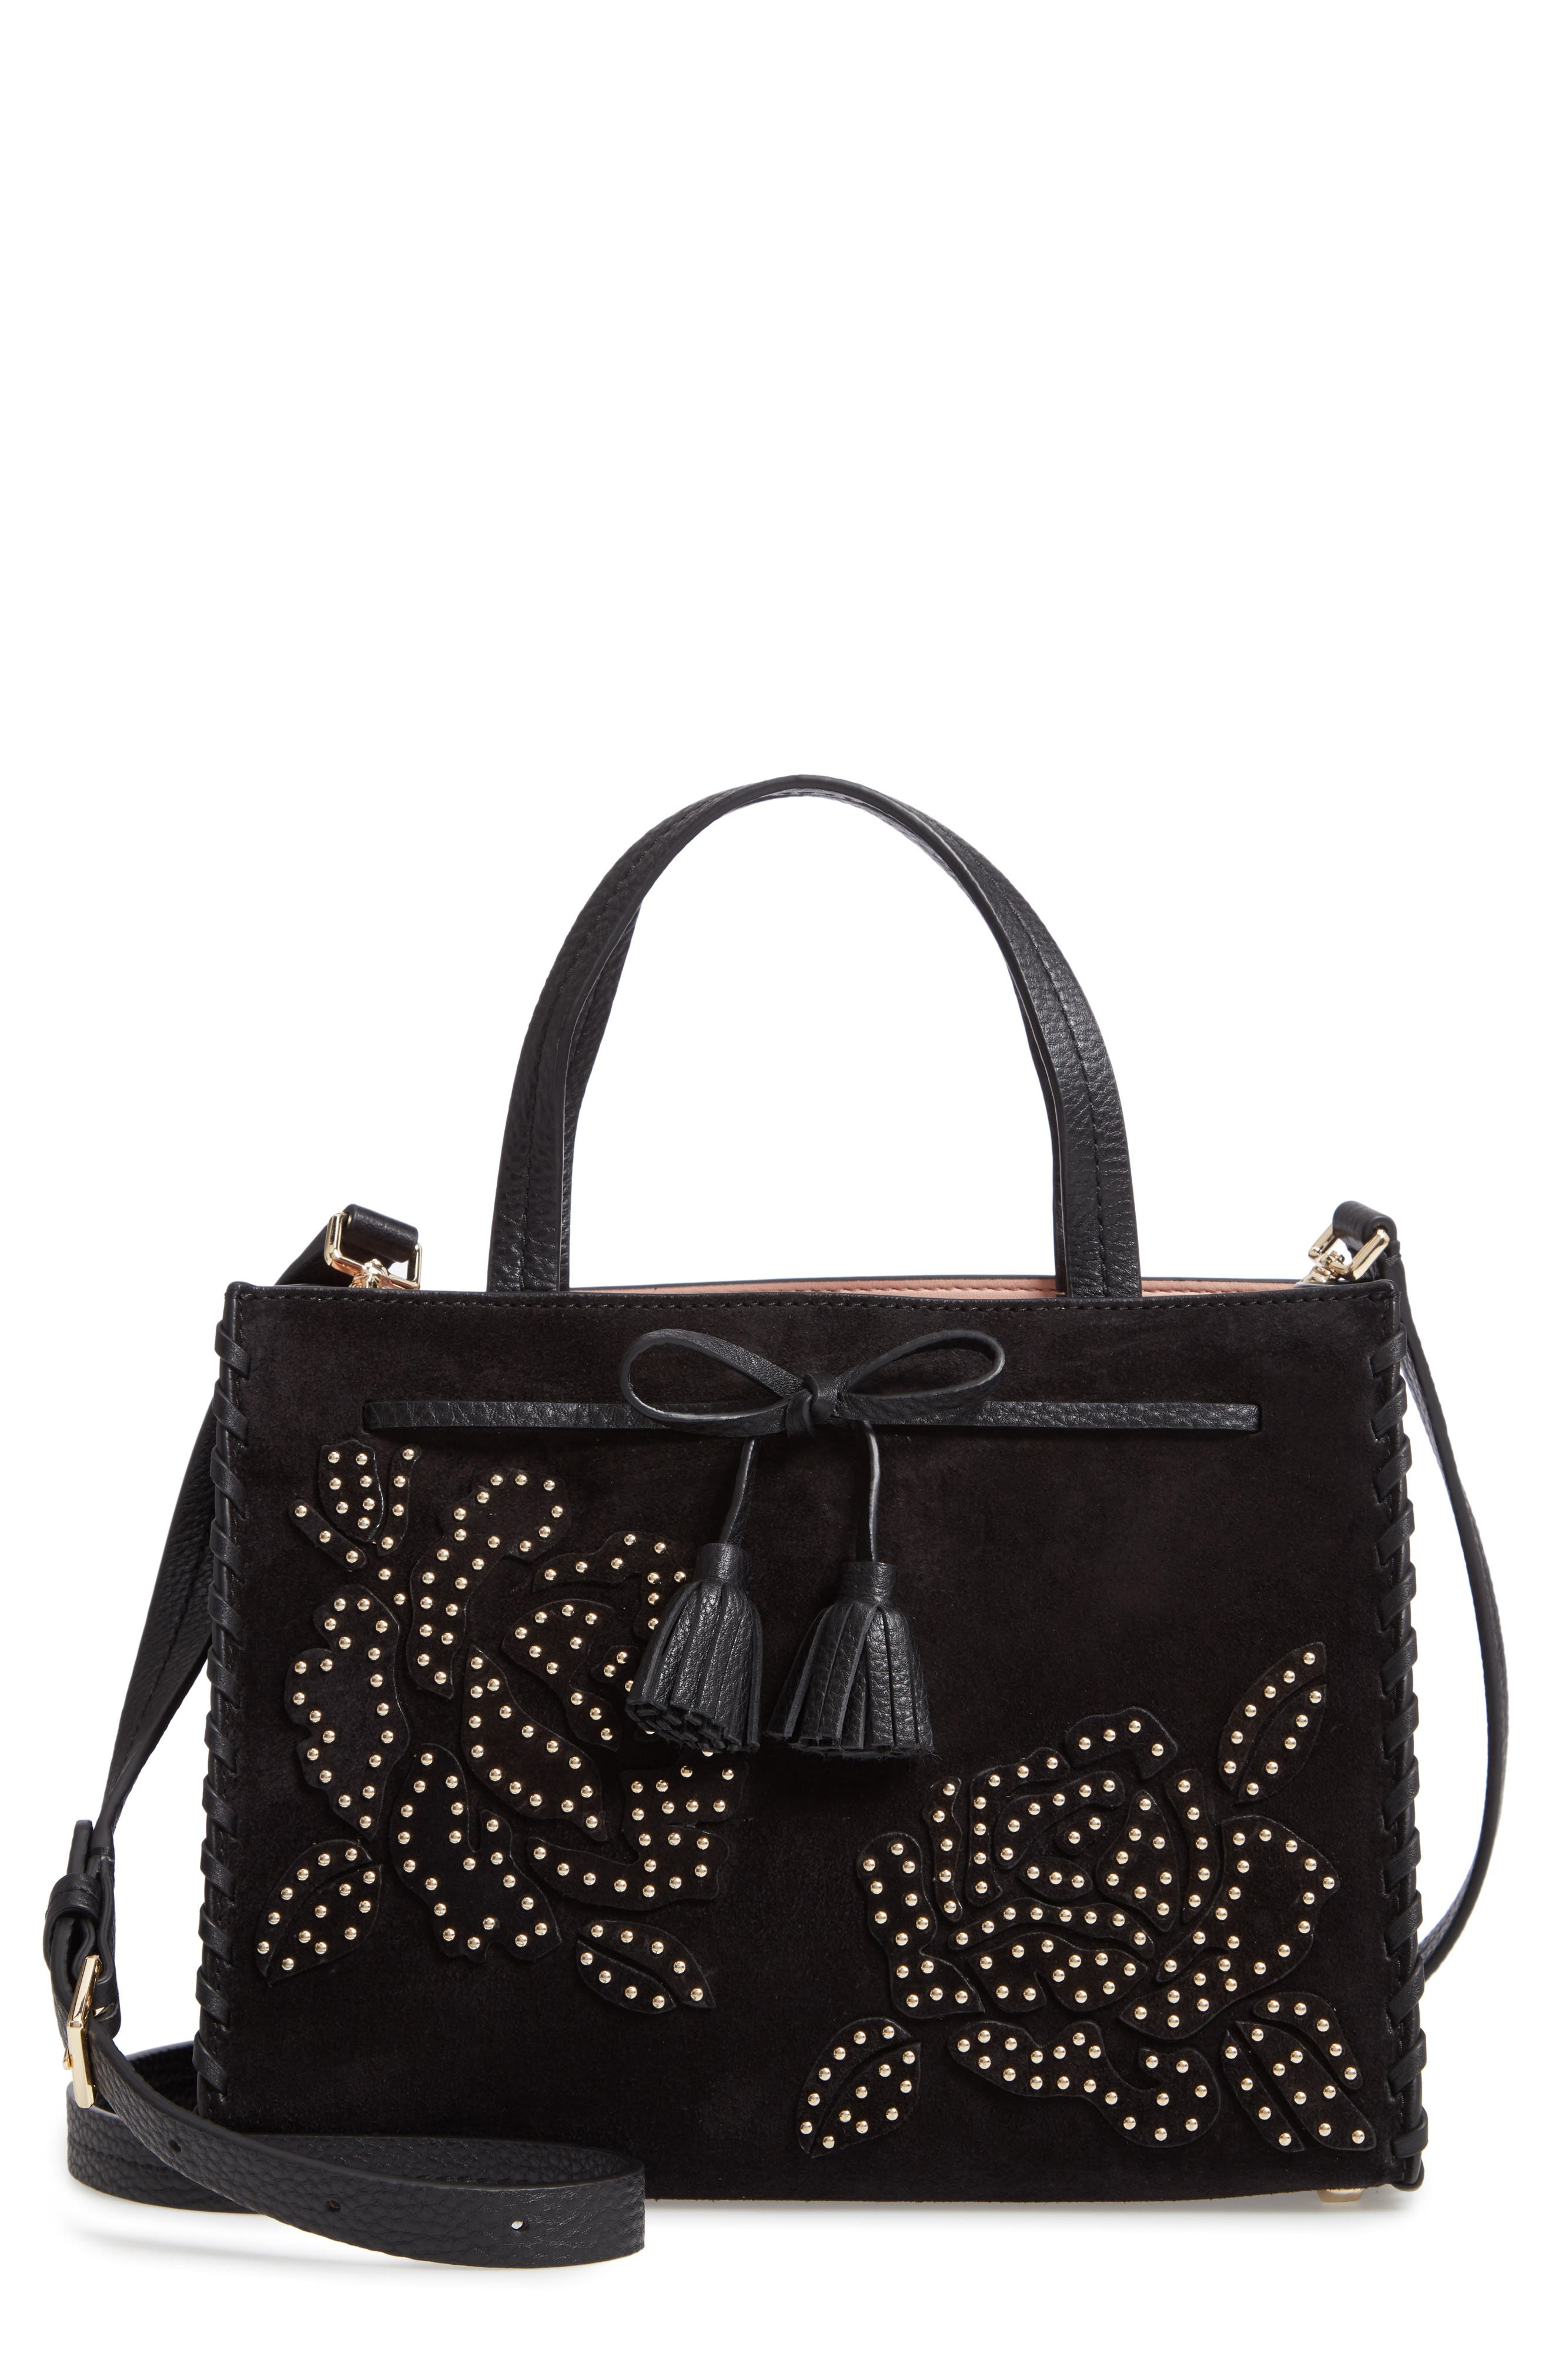 hayes street - rose studs suede & leather satchel,                             Main thumbnail 1, color,                             BLACK